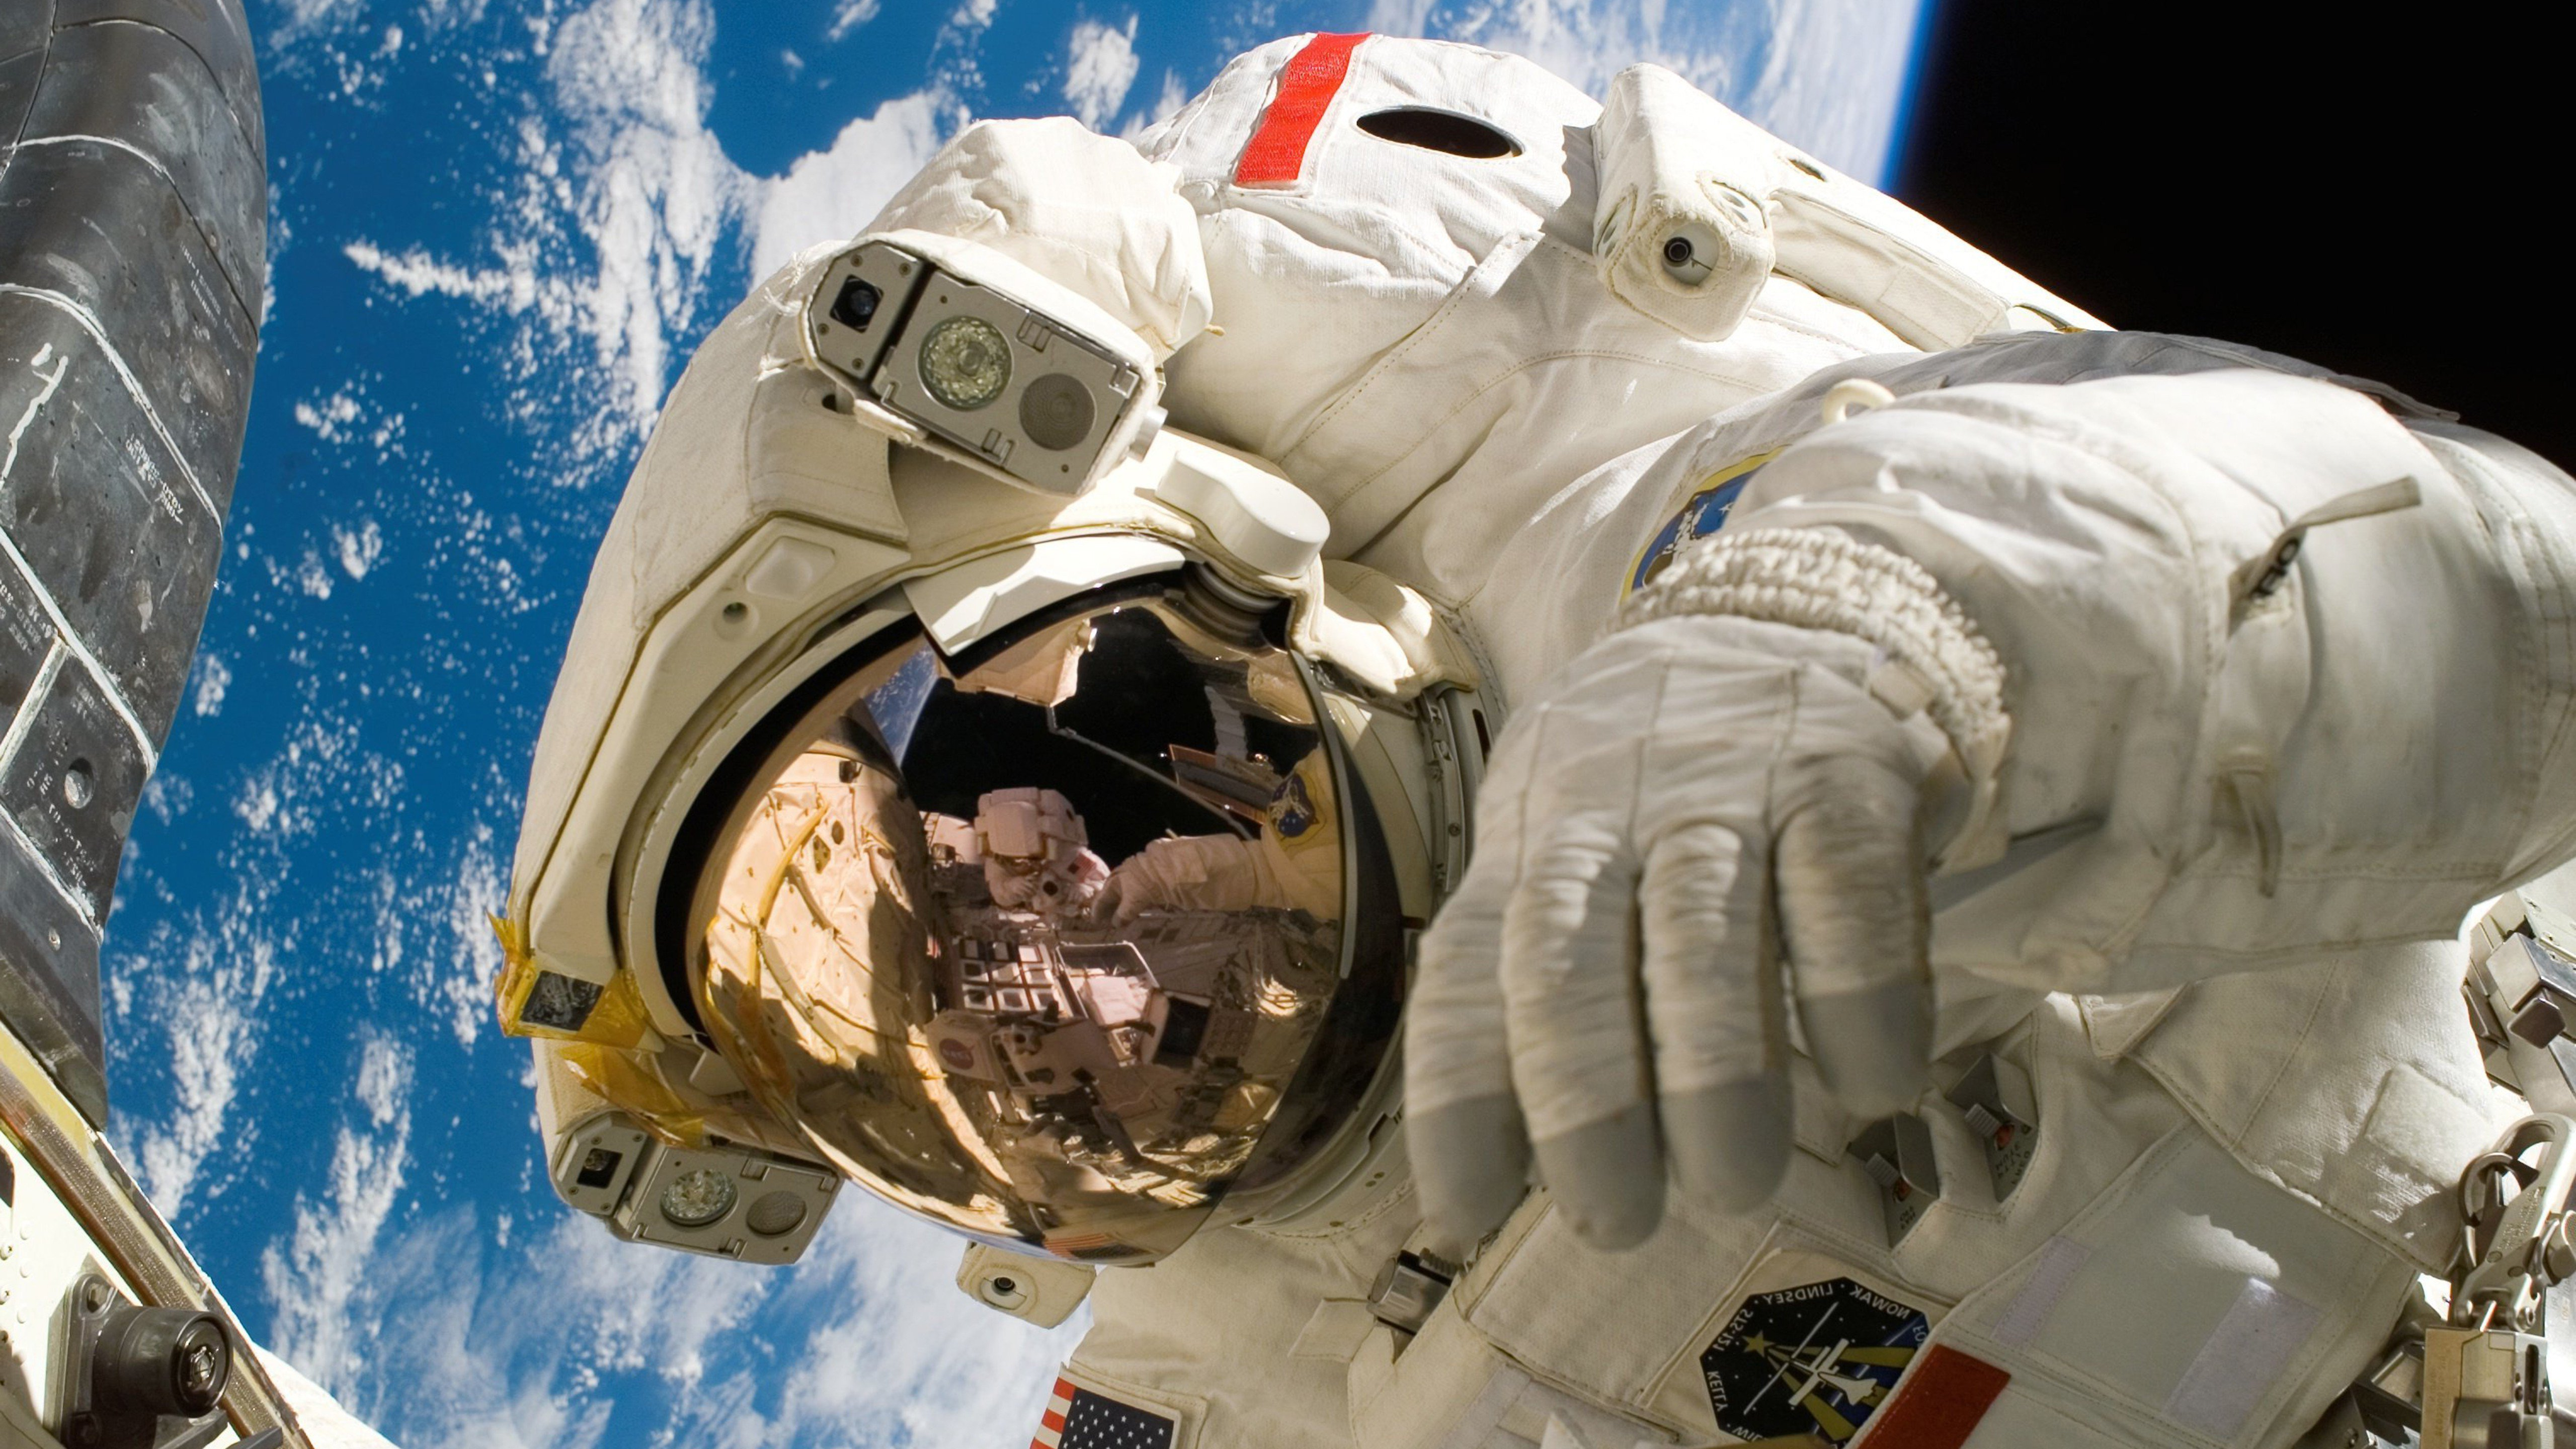 1336x768 Astronaut Laptop Hd Hd 4k Wallpapers Images Backgrounds Photos And Pictures